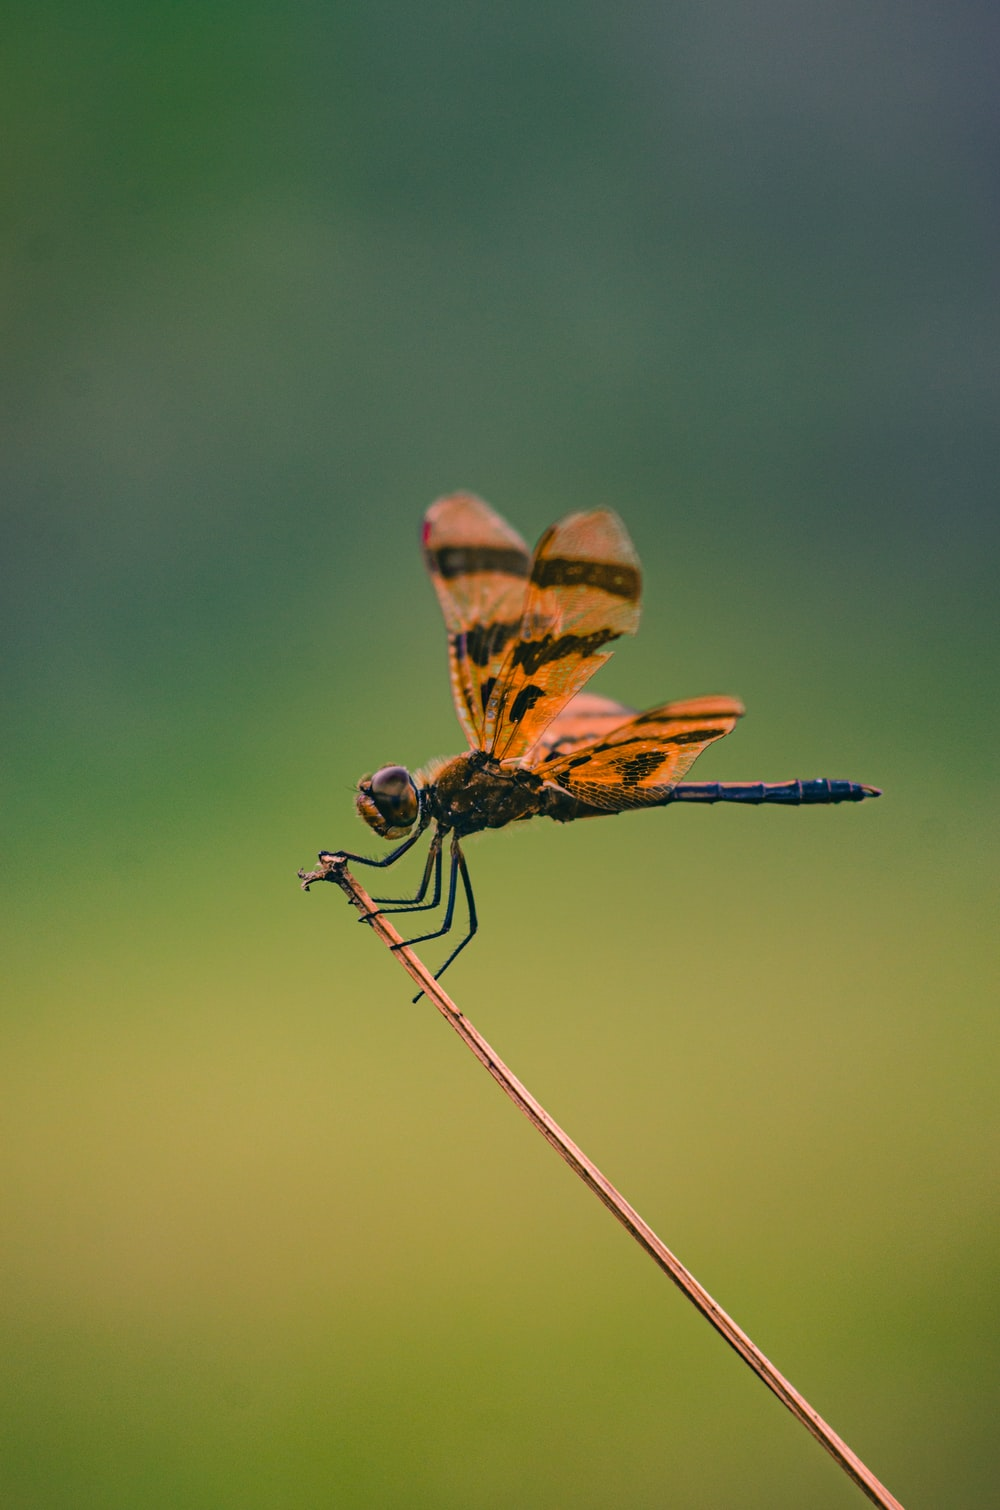 brown and black dragonfly in close up photography during daytime